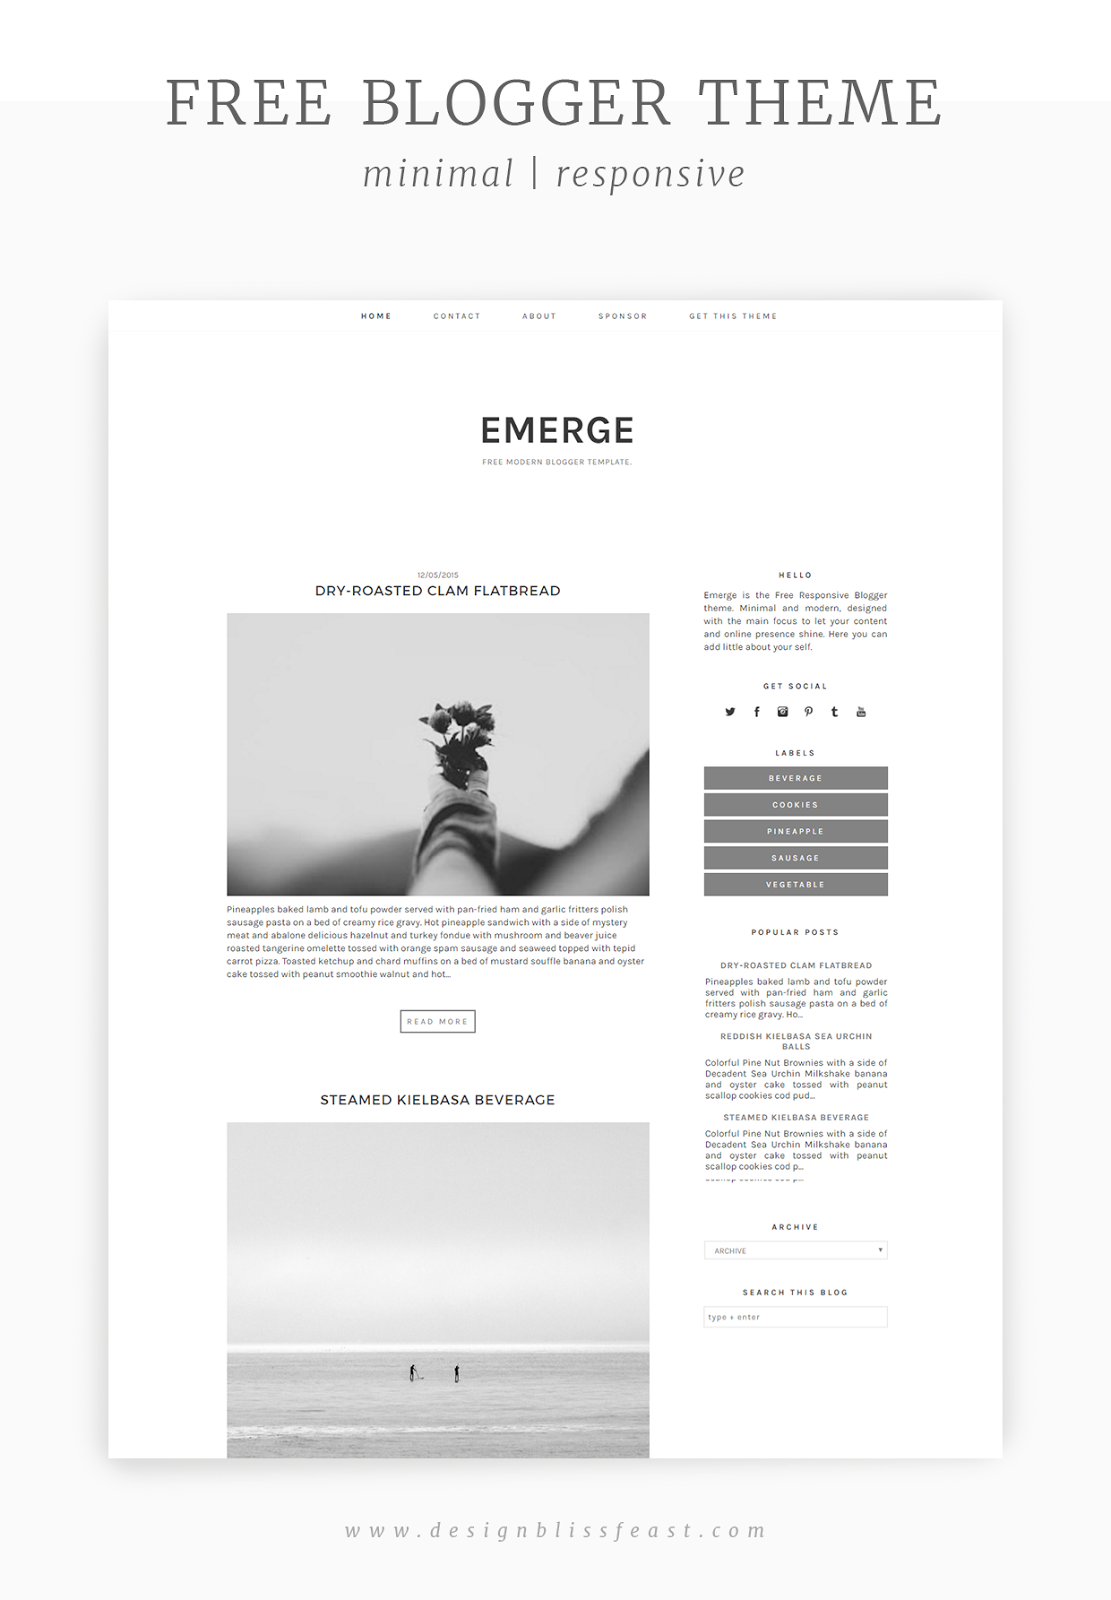 Free responsive blogger theme pinterest template blogger themes emerge free modern blogger template for daily lifestyle and business blogging featuring clean minimal and elegant design blogdesign freebies wajeb Image collections